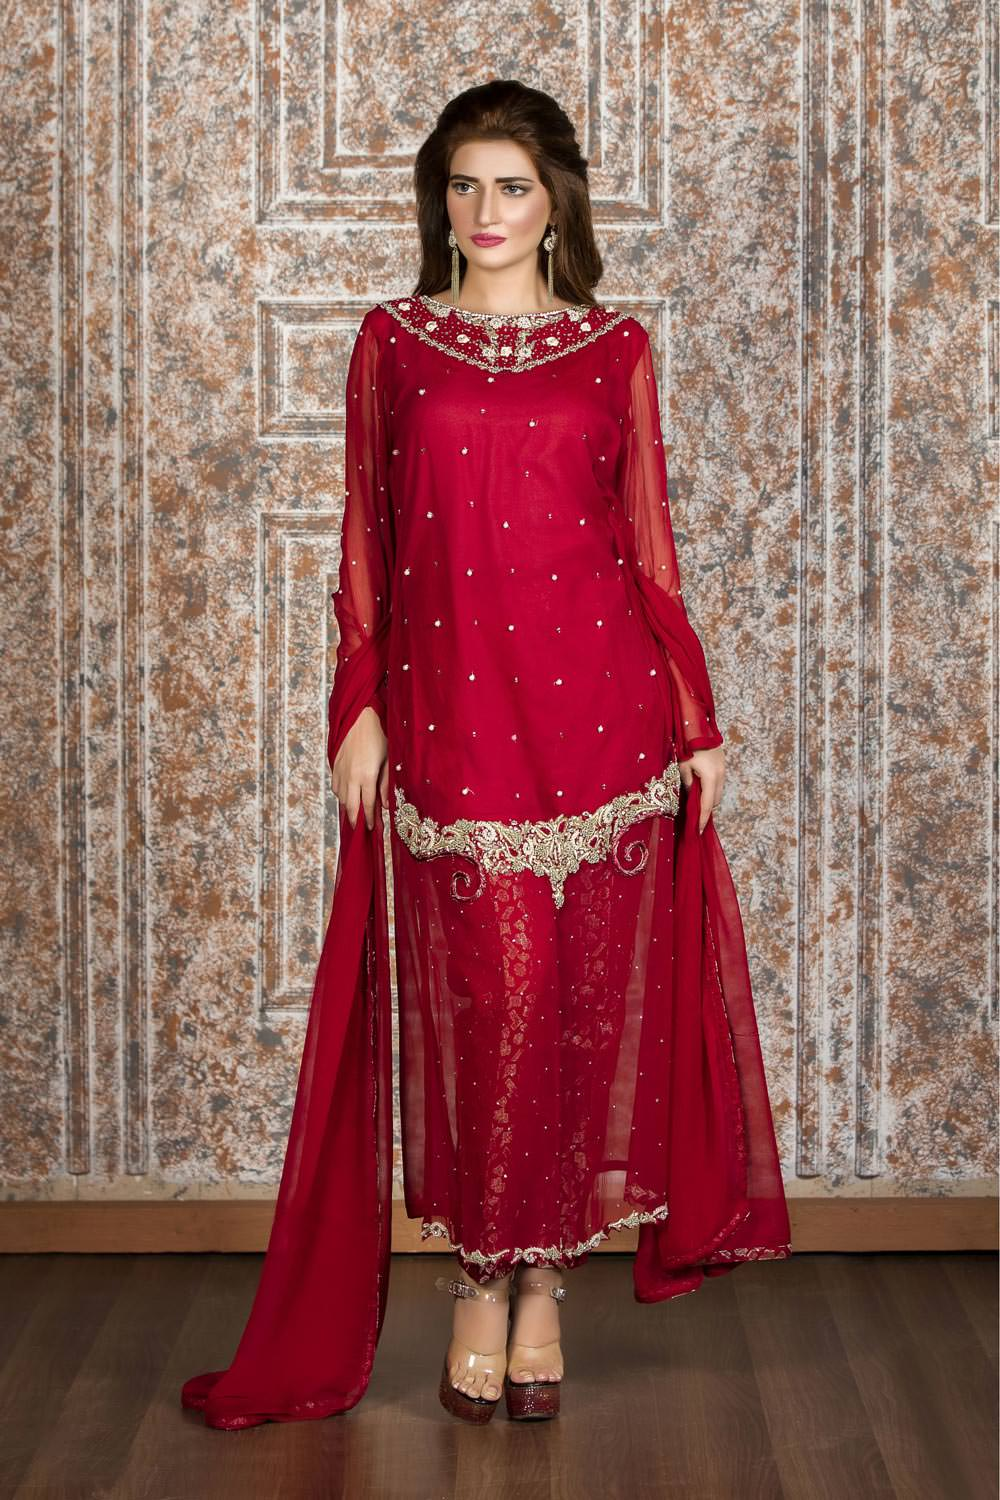 3a9cf58c47 25 Latest Trends in Pakistani Party Dresses 2018 - Dresses - Crayon